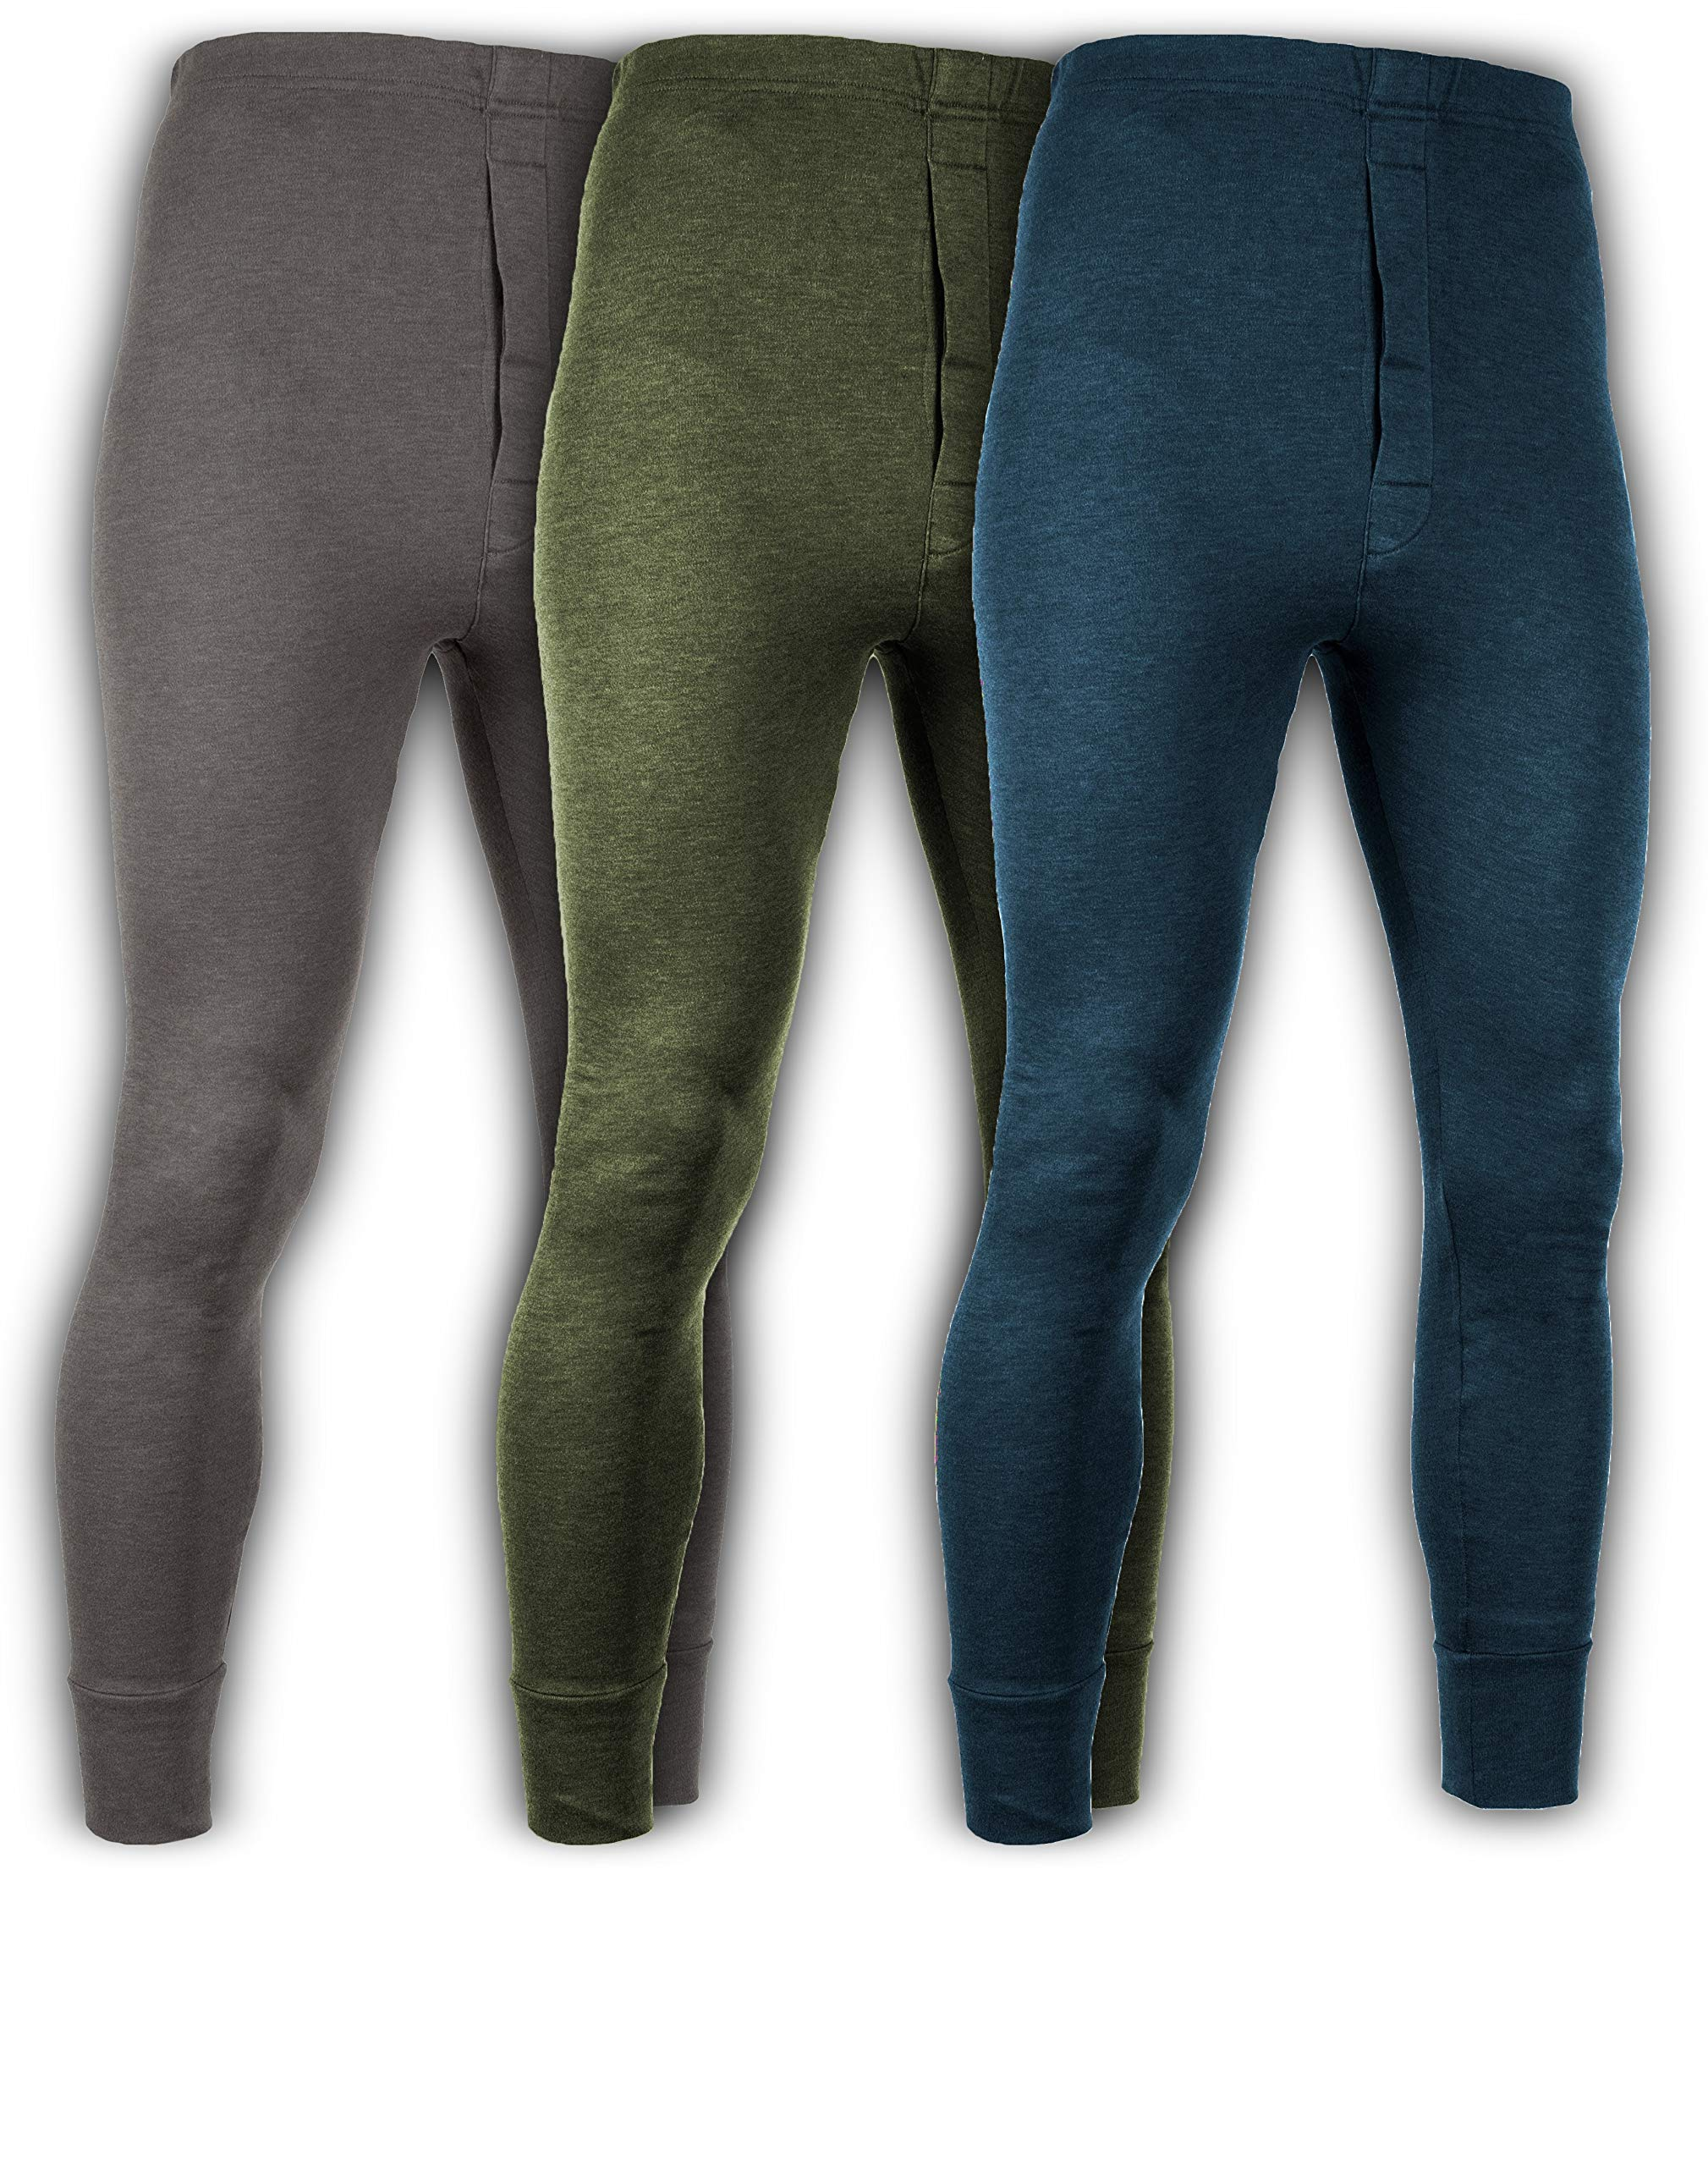 Andrew Scott Men's 3 Pack Premium Cotton Base Layer Long Thermal Underwear Pants (3 Pack- Charcoal/Olive/Legion Blue, XXX-Large) by Andrew Scott